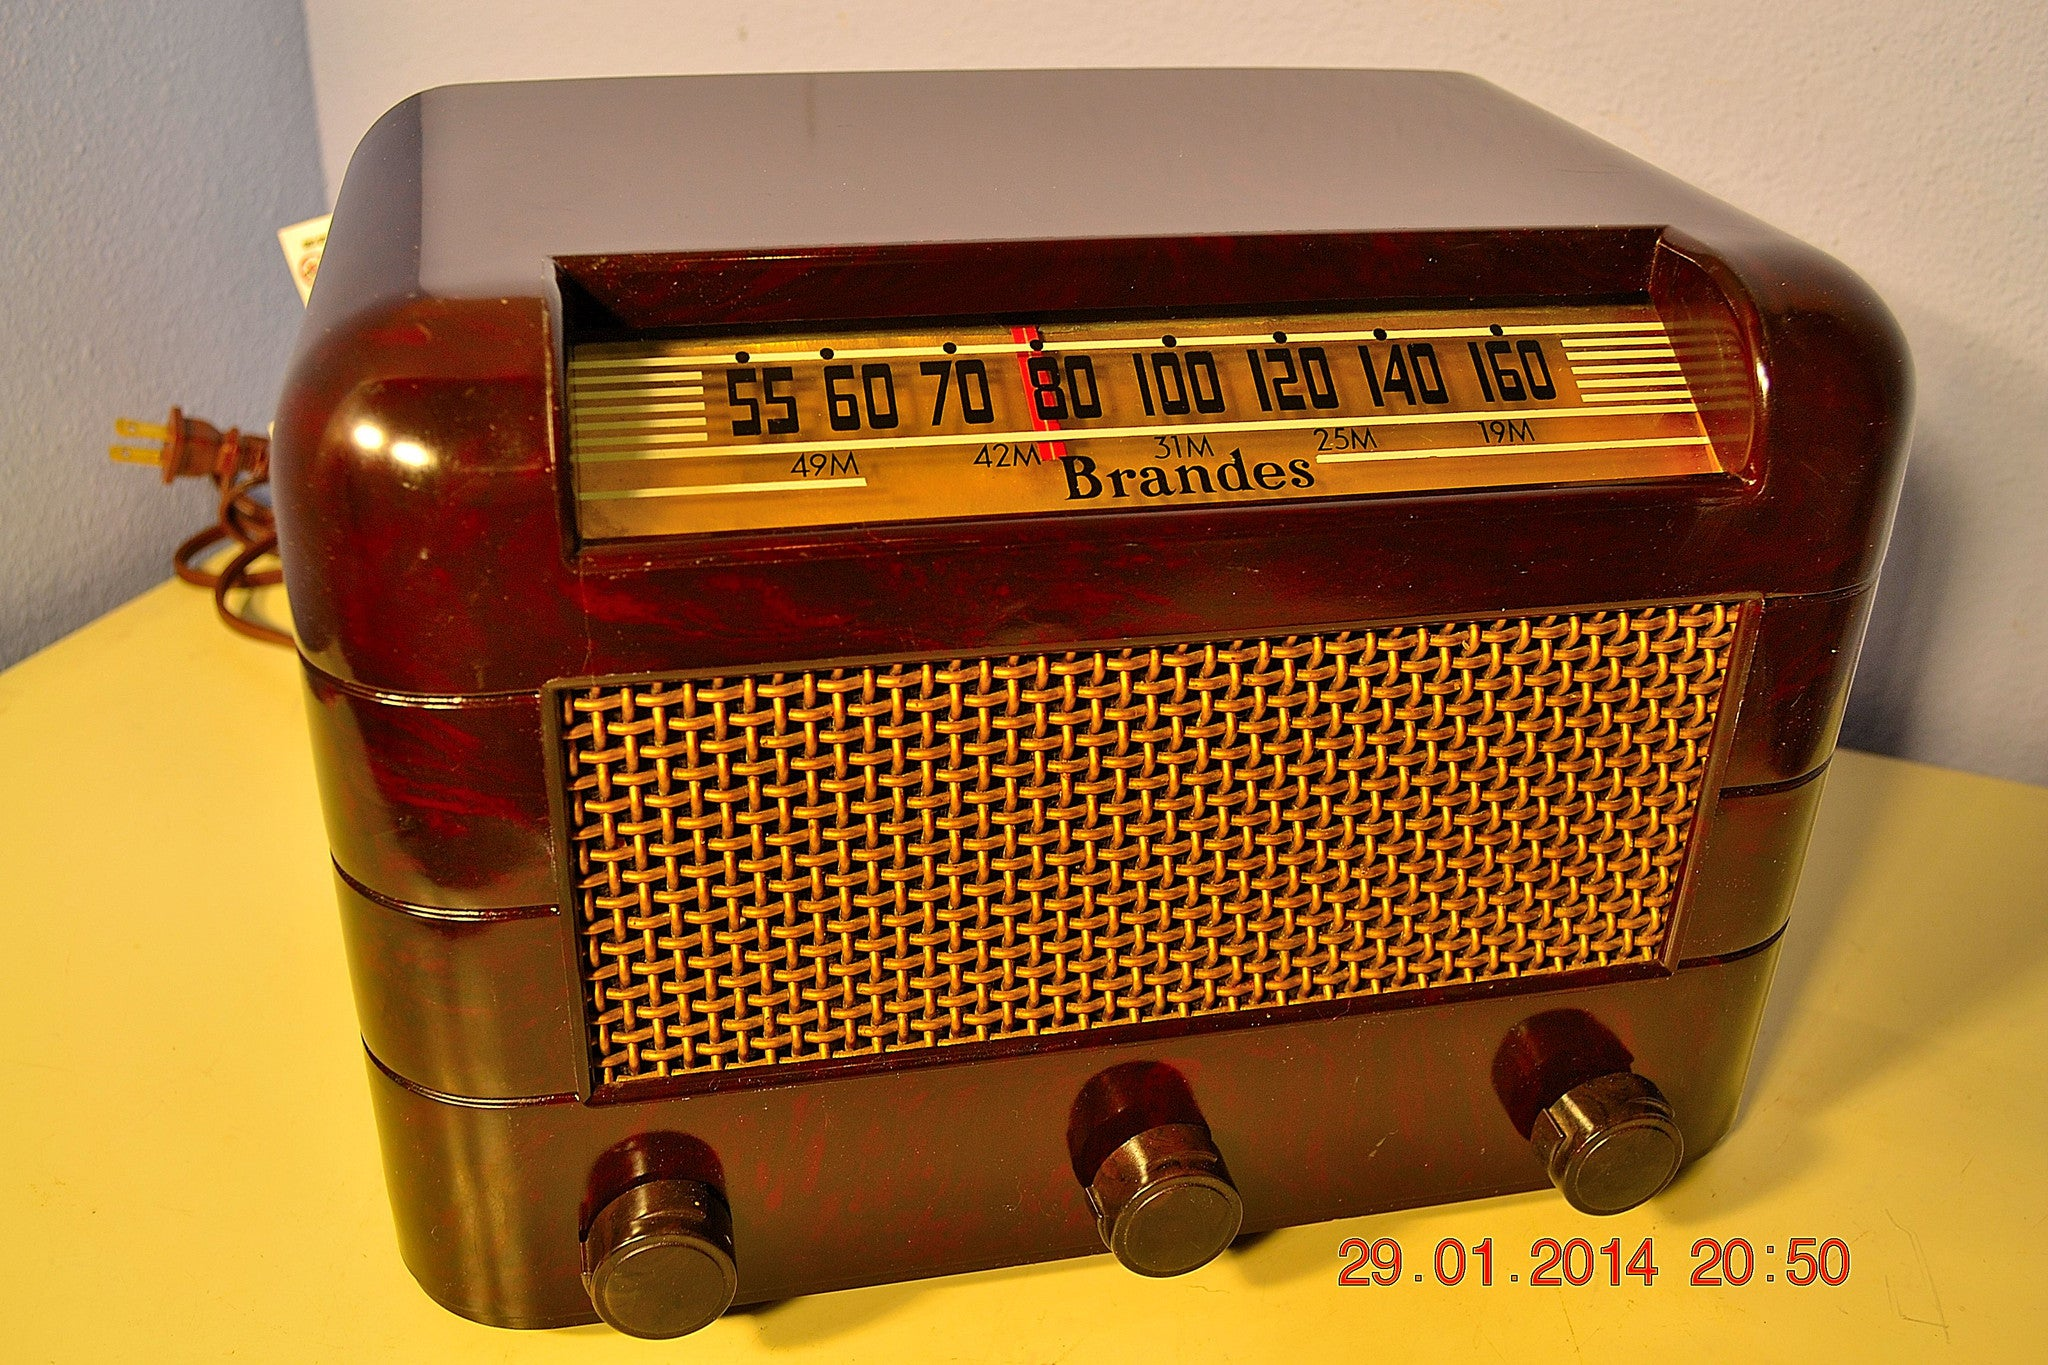 SOLD! - Oct 31, 2014 - BEAUTIFUL PRISTINE Rare Art Deco Retro 1946-48 BRANDES AM Tube Radio Works! Wow! , Vintage Radio - Brandes, Retro Radio Farm  - 1